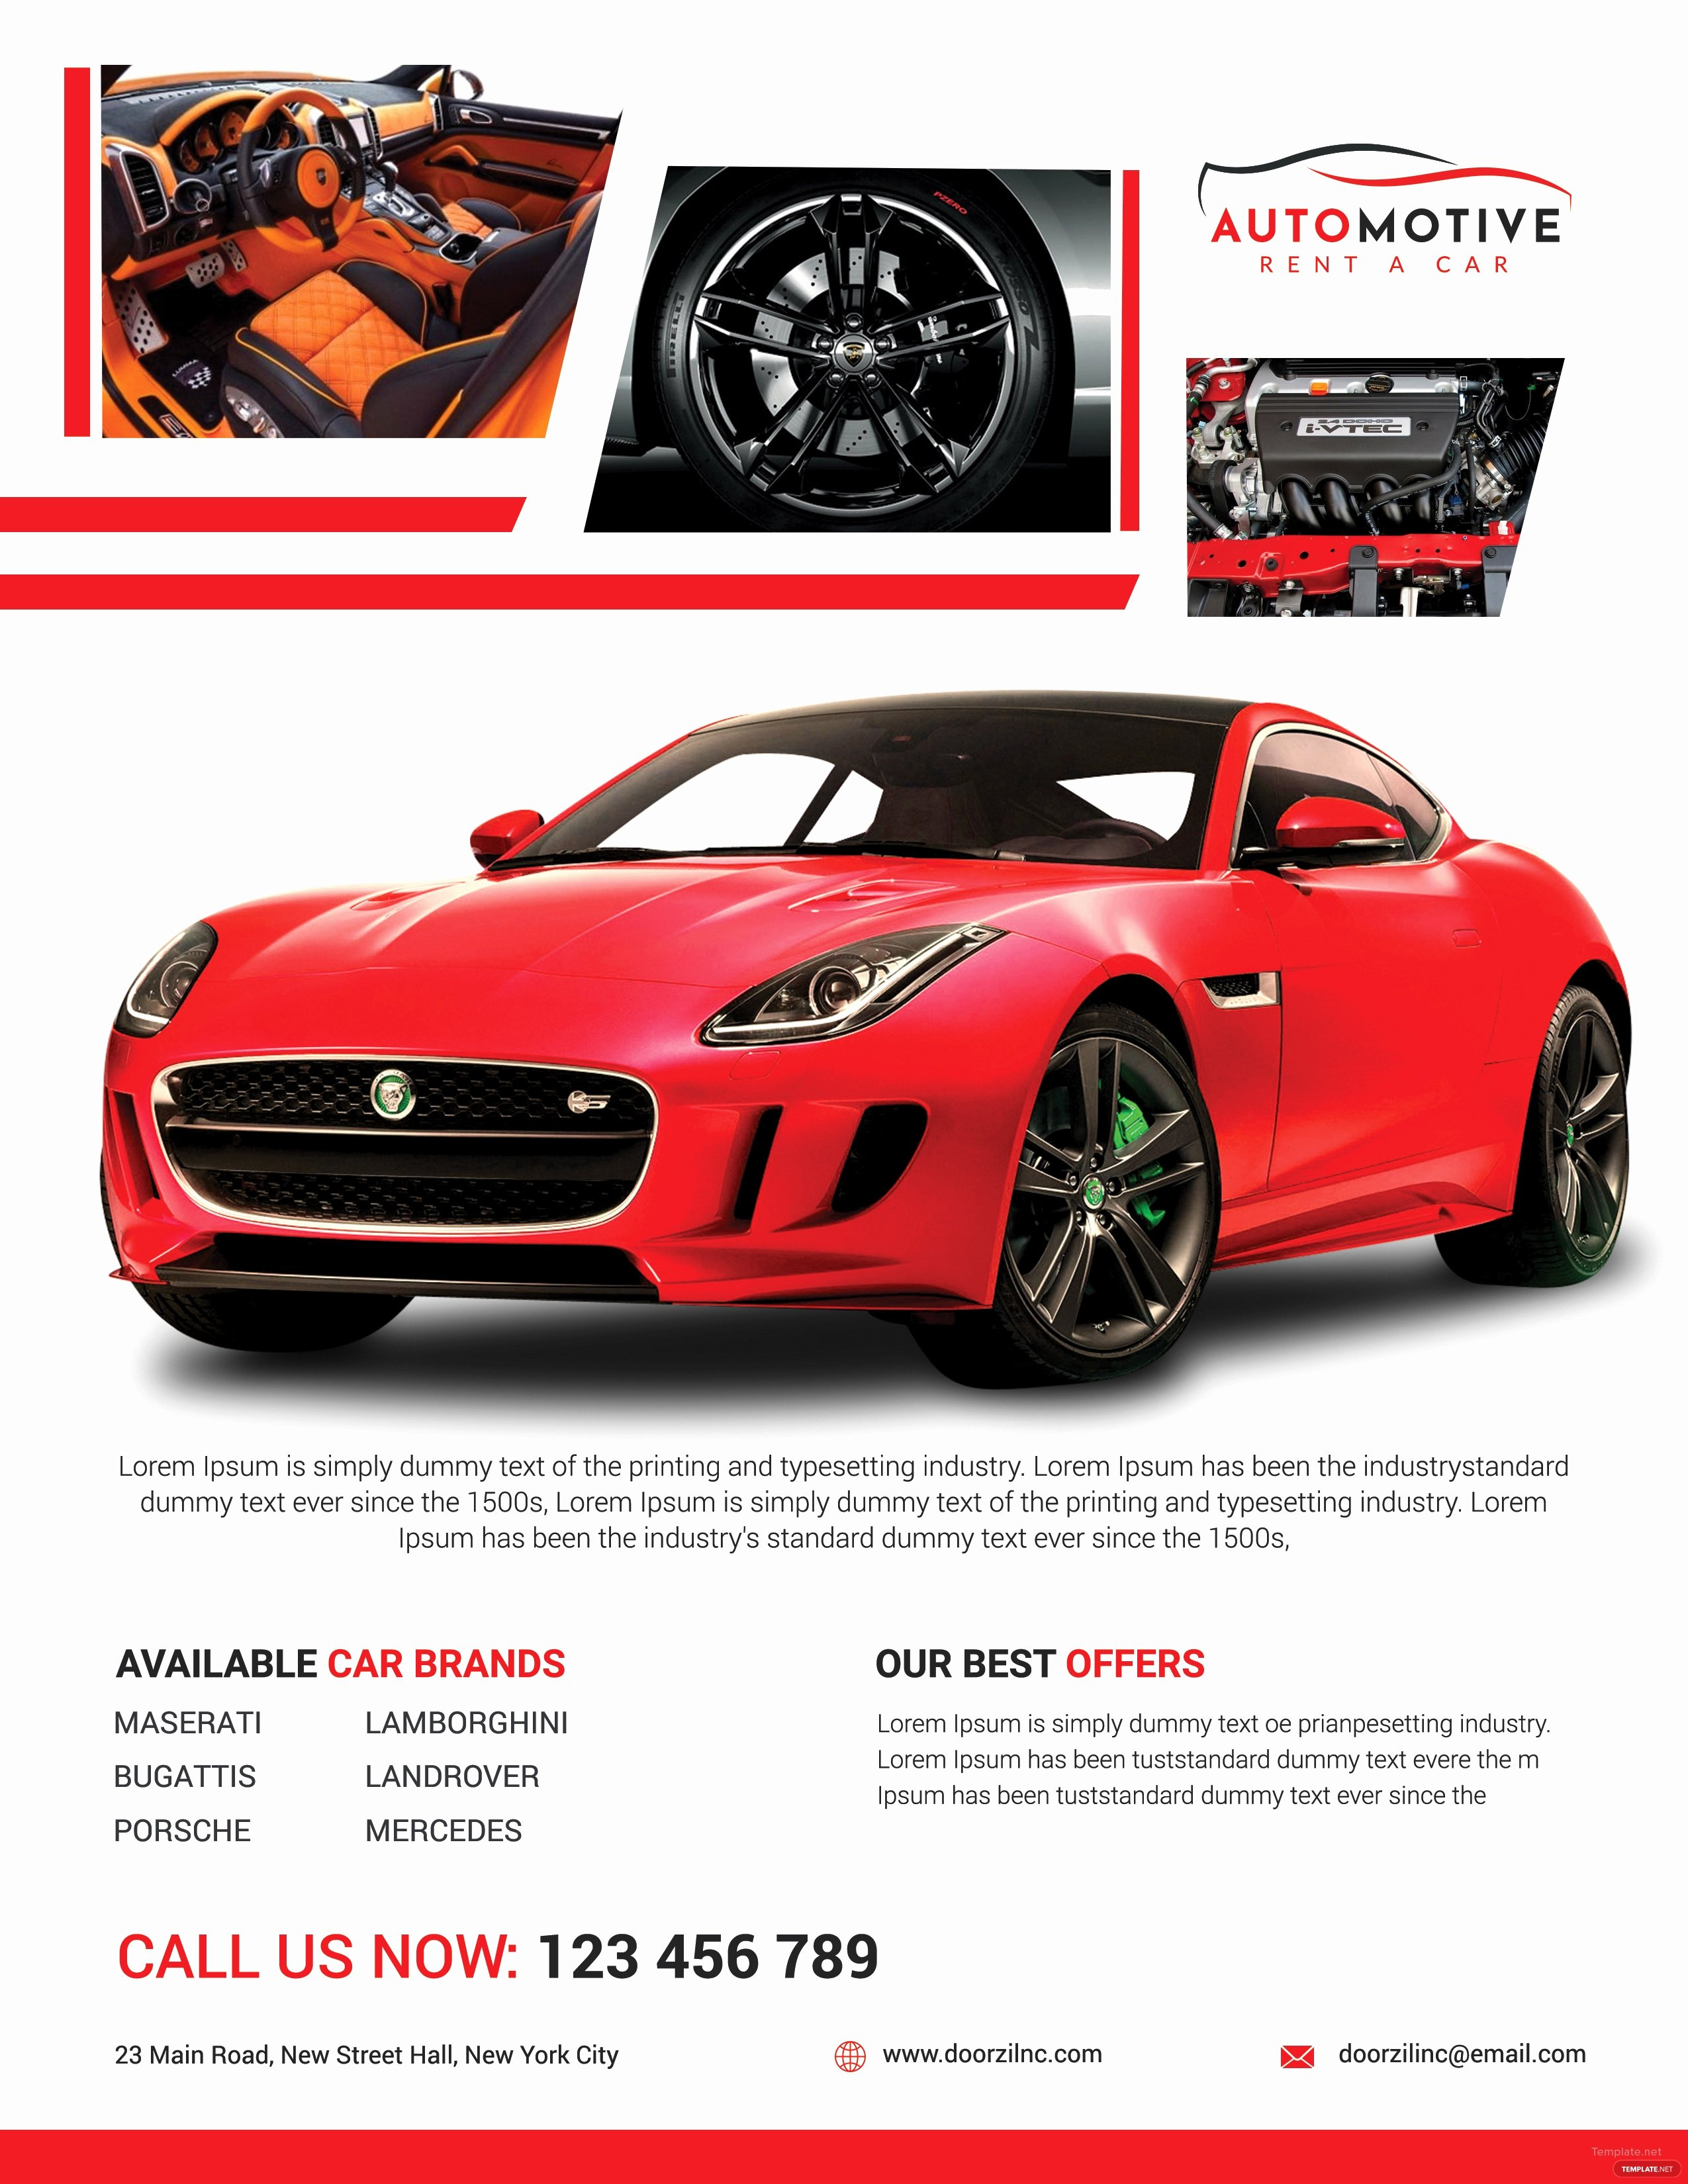 Car for Sale Template Free Fresh Car Sales Flyer Template In Adobe Shop Illustrator Microsoft Word Publisher Apple Pages